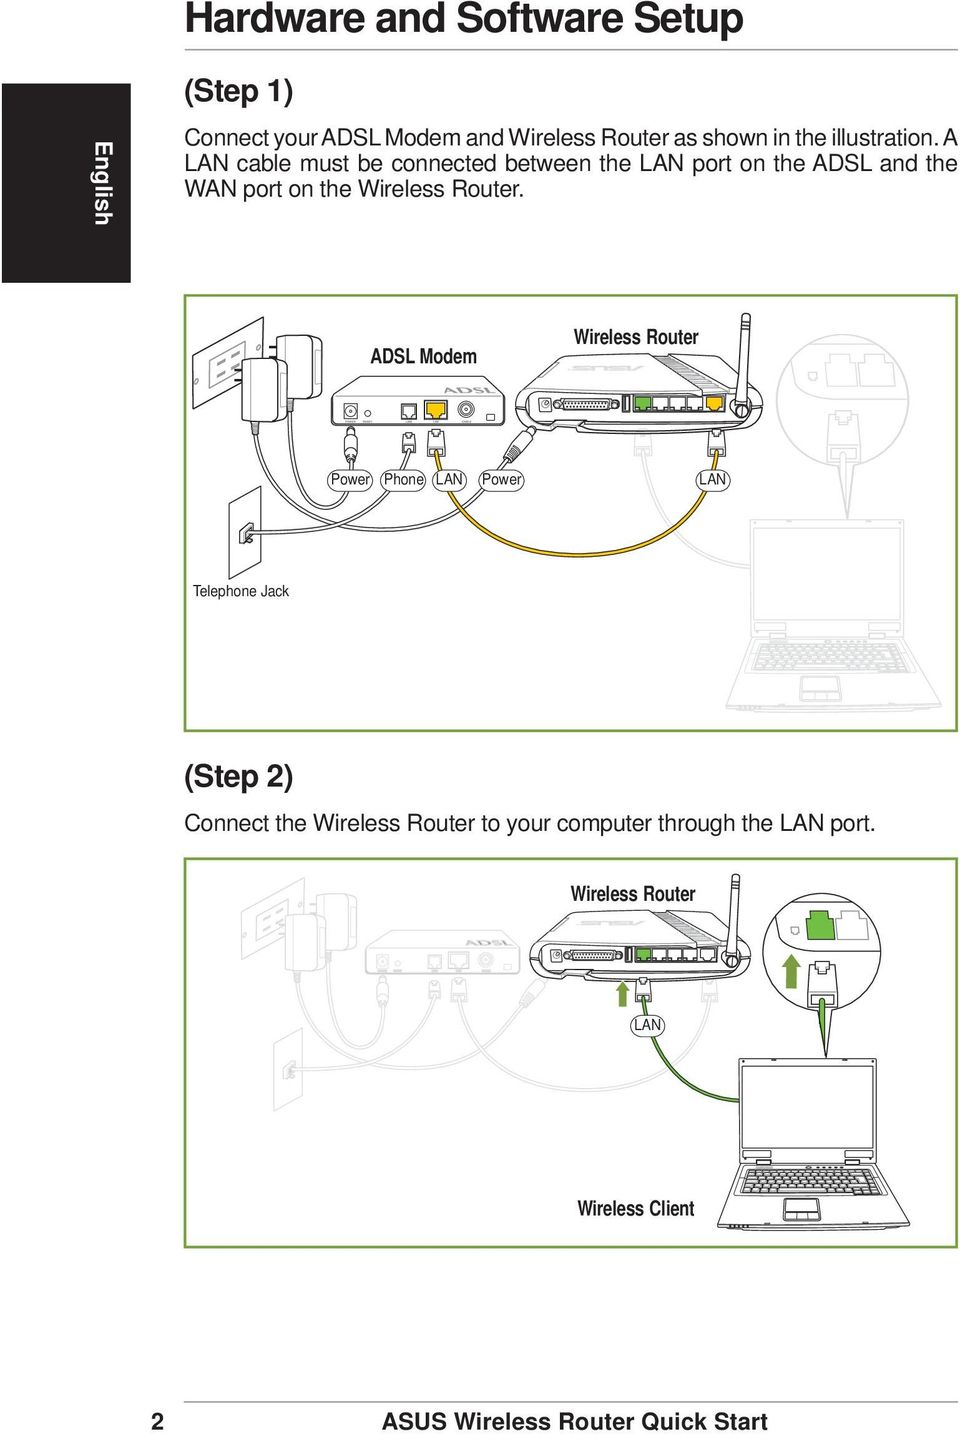 A LAN cable must be connected between the LAN port on the ADSL and the WAN port on the Wireless Router.